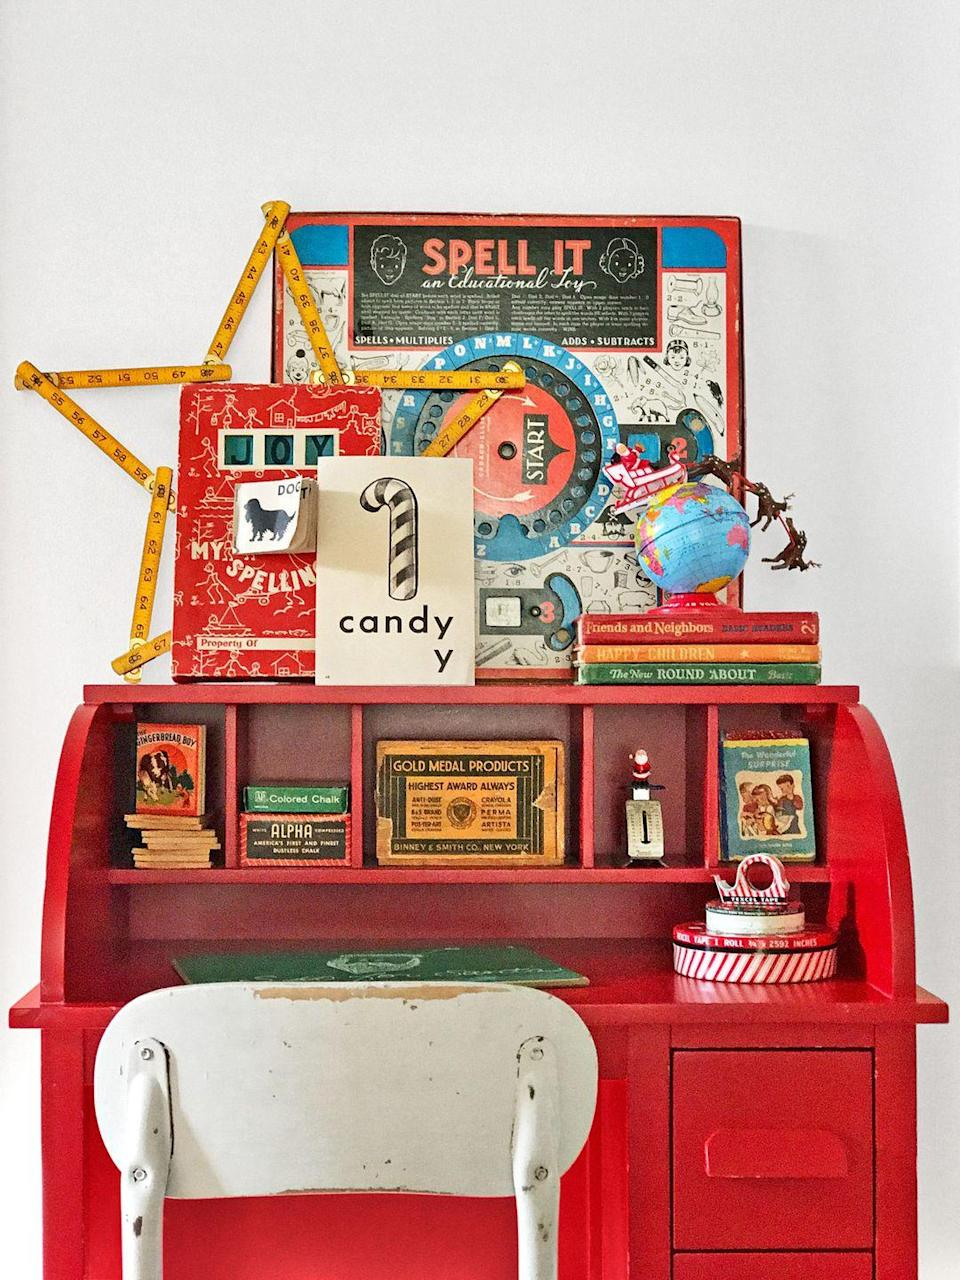 """<p>Striped tape dispensers, Christmas-inspired flashcards, and other vintage school supplies look positively merry on this desk. The rulers in the shape of a star have to be our favorite part though.</p><p><a class=""""link rapid-noclick-resp"""" href=""""https://www.amazon.com/Vintage-Advertisement-Cocoa-Christmas-Plaque/dp/B075XQ9S1T?tag=syn-yahoo-20&ascsubtag=%5Bartid%7C10050.g.1247%5Bsrc%7Cyahoo-us"""" rel=""""nofollow noopener"""" target=""""_blank"""" data-ylk=""""slk:SHOP VINTAGE SIGNS"""">SHOP VINTAGE SIGNS</a></p>"""